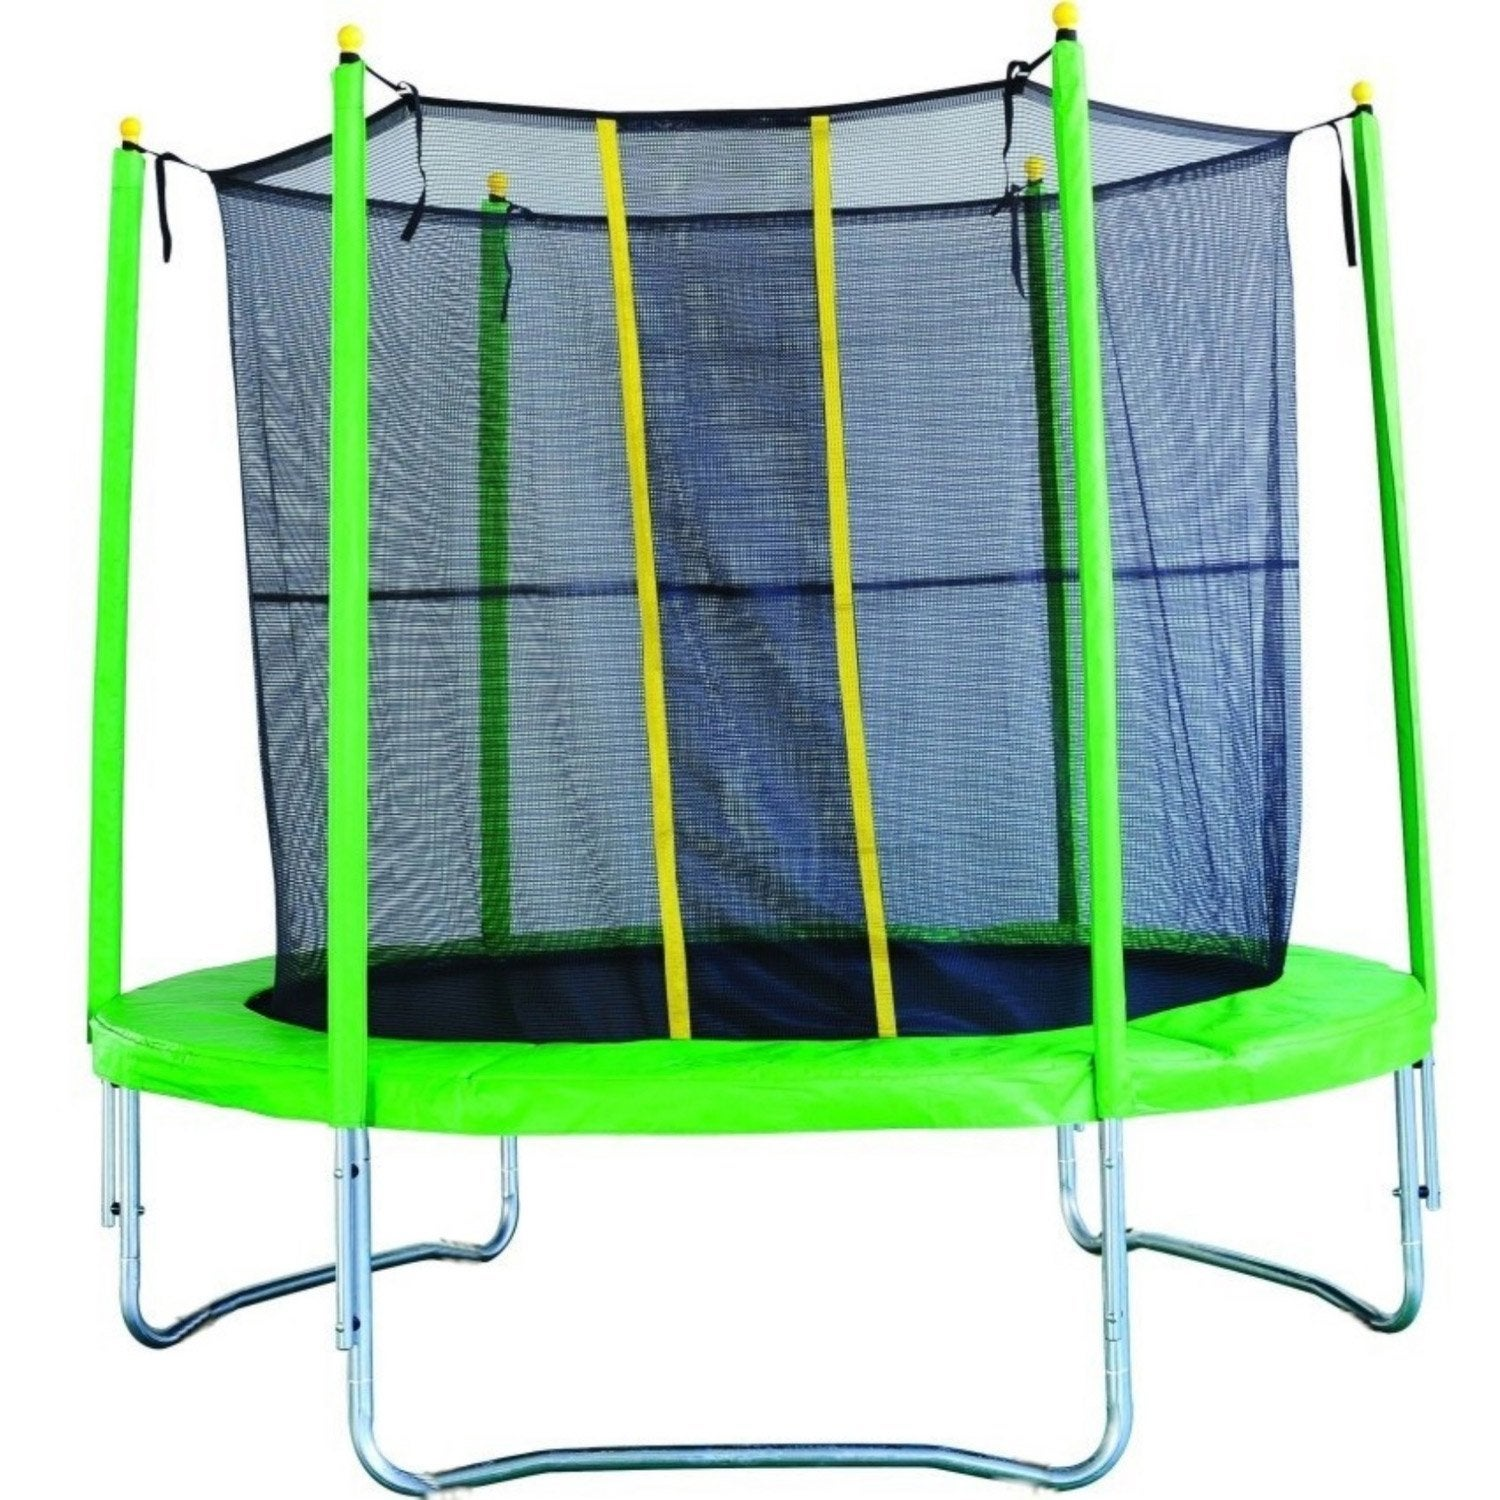 Trampoline et filet int rieur 250 cm leroy merlin for Trampoline interieur